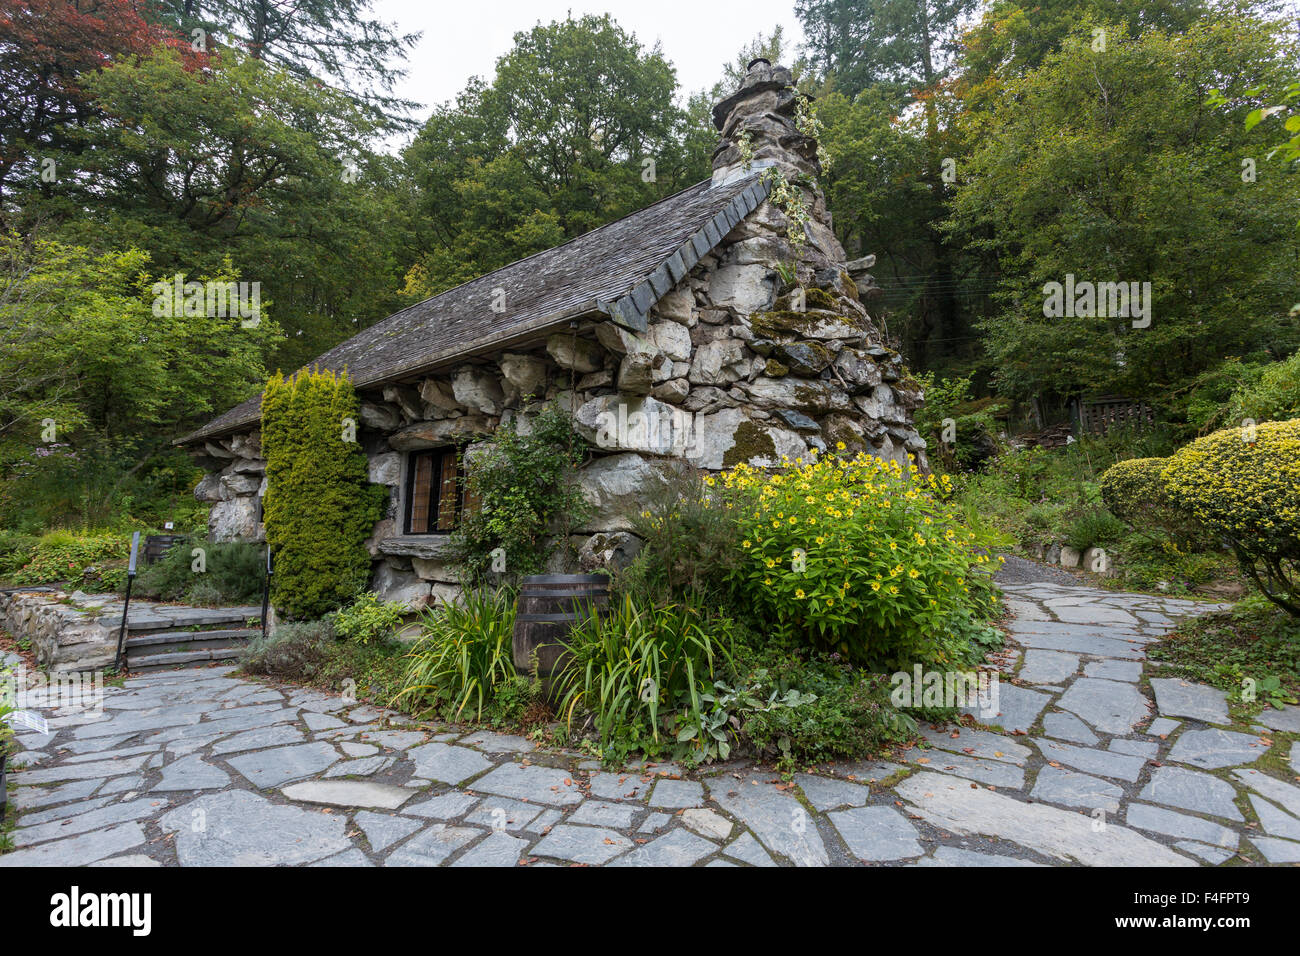 The Ugly House, or Tŷ Hyll, near Capel Curig, Snowdonia.  Owned by the Snowdonia Society as a tea room and visitor - Stock Image